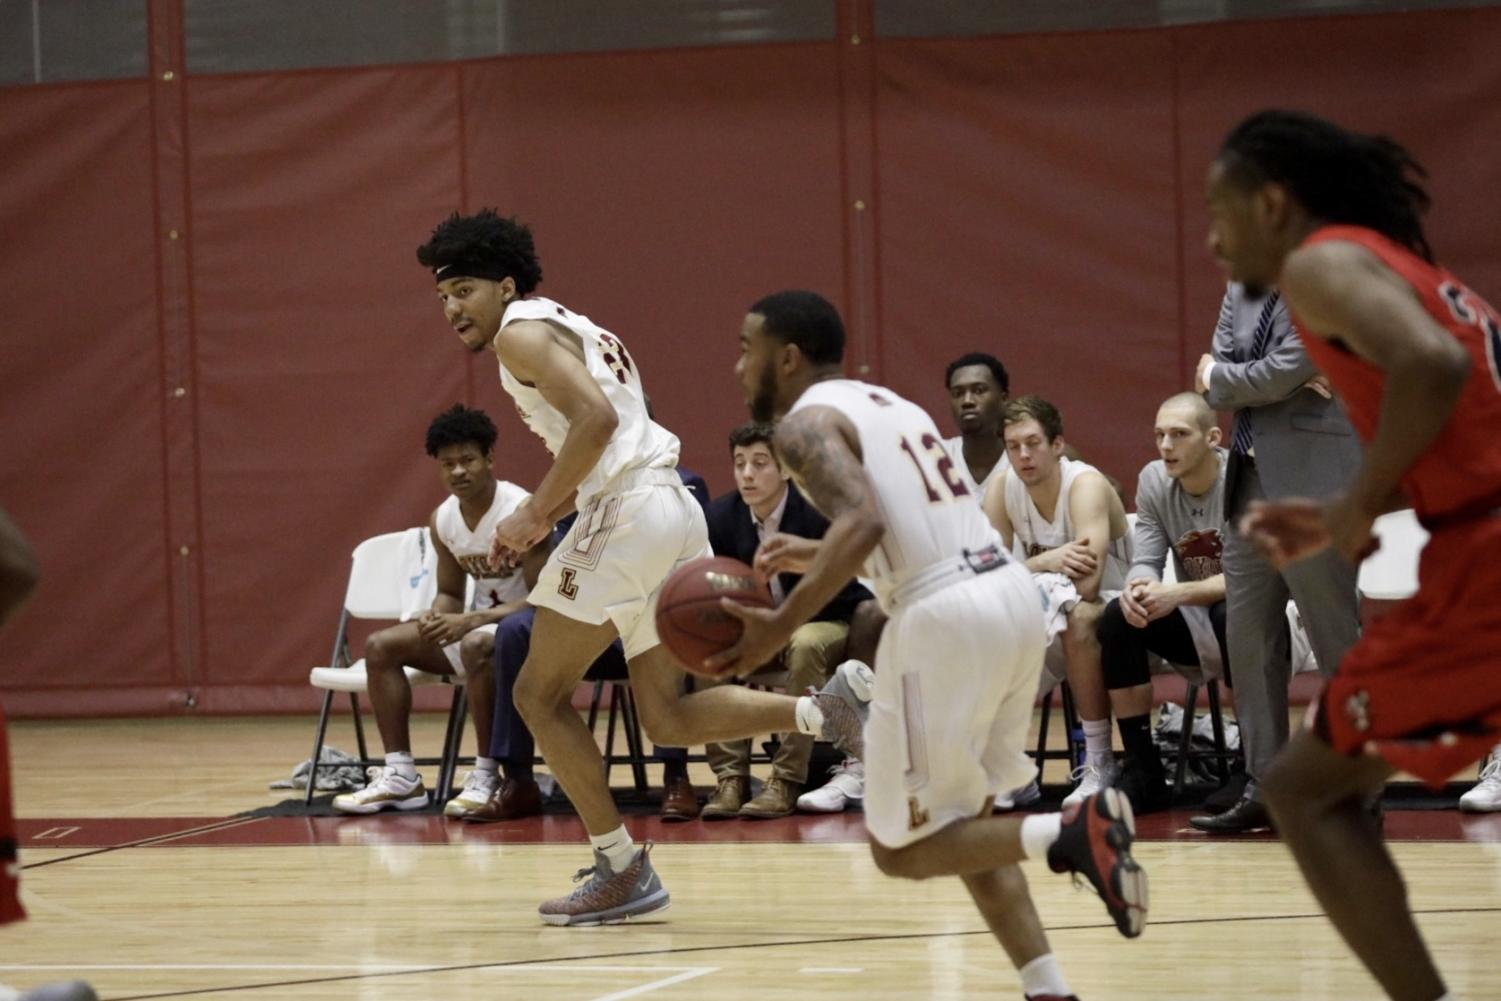 Mass communication senior Eric Brown (12) drives the offensive play in transition. Photo credit: Andres Fuentes